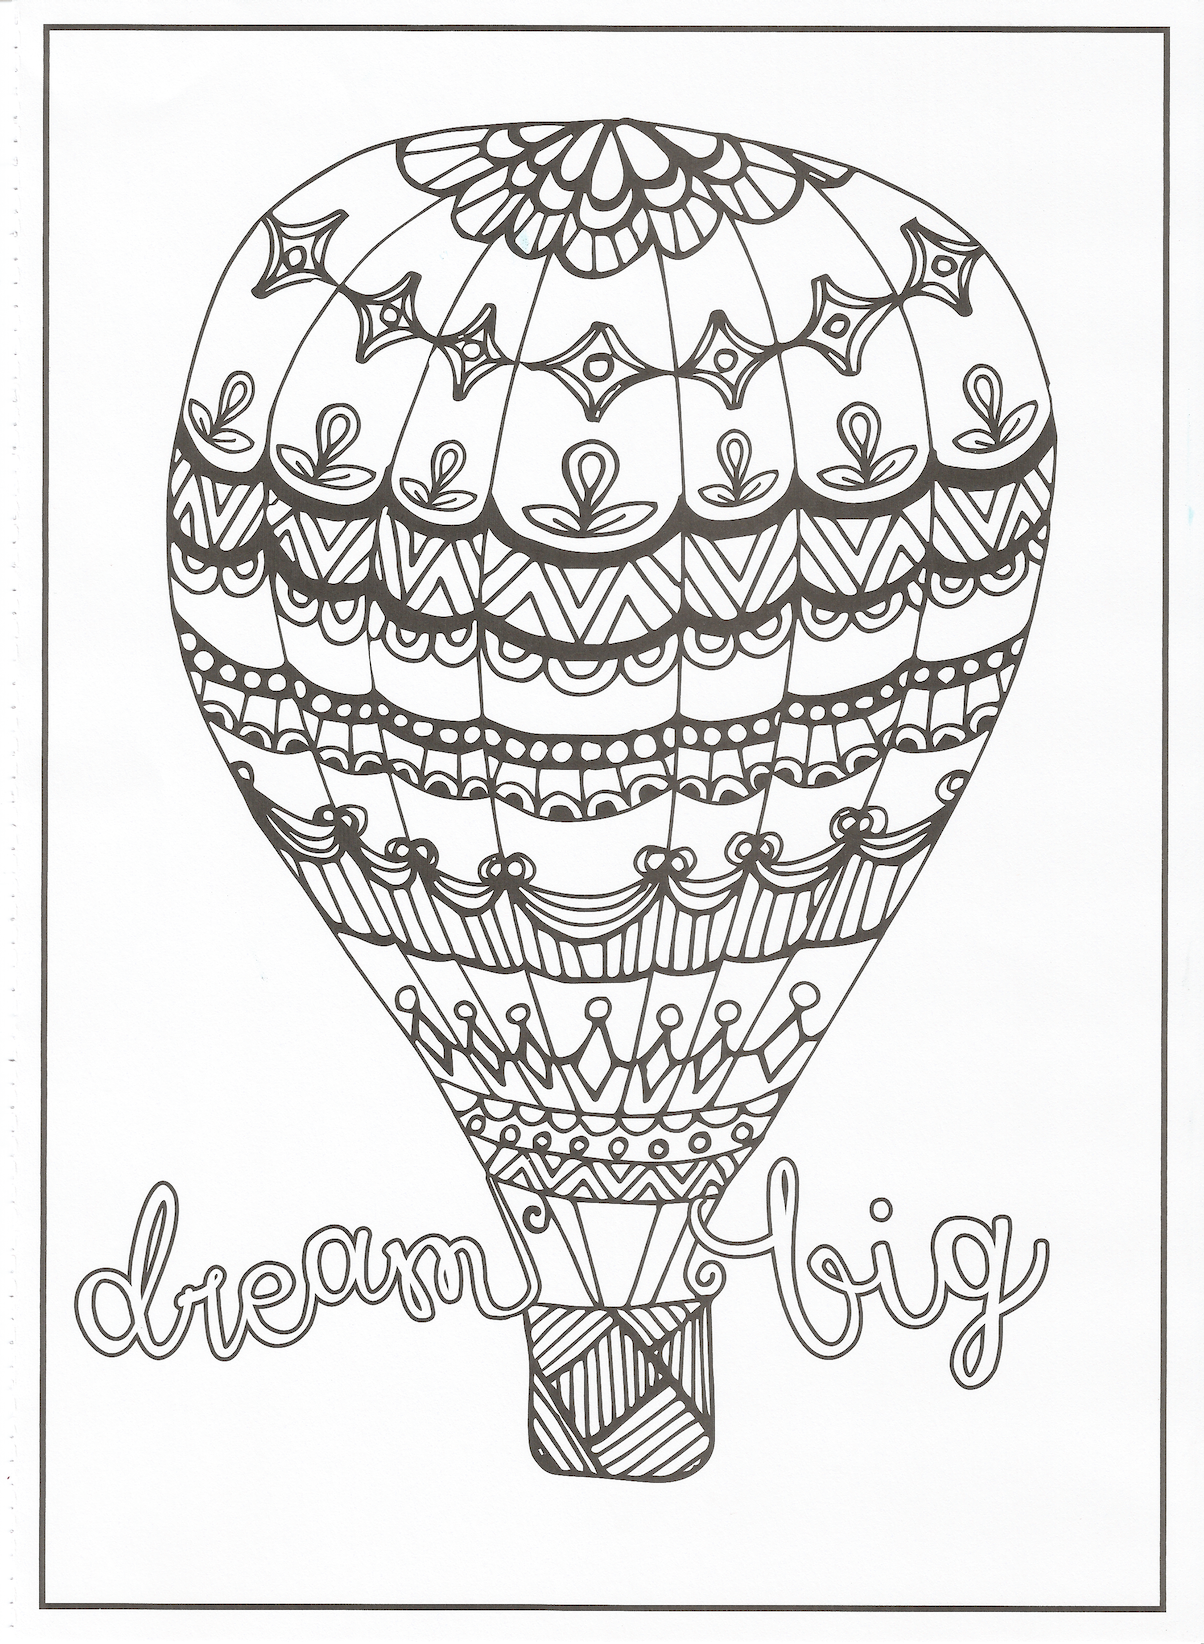 Timeless Creations Creative Quotes Coloring Page Dream